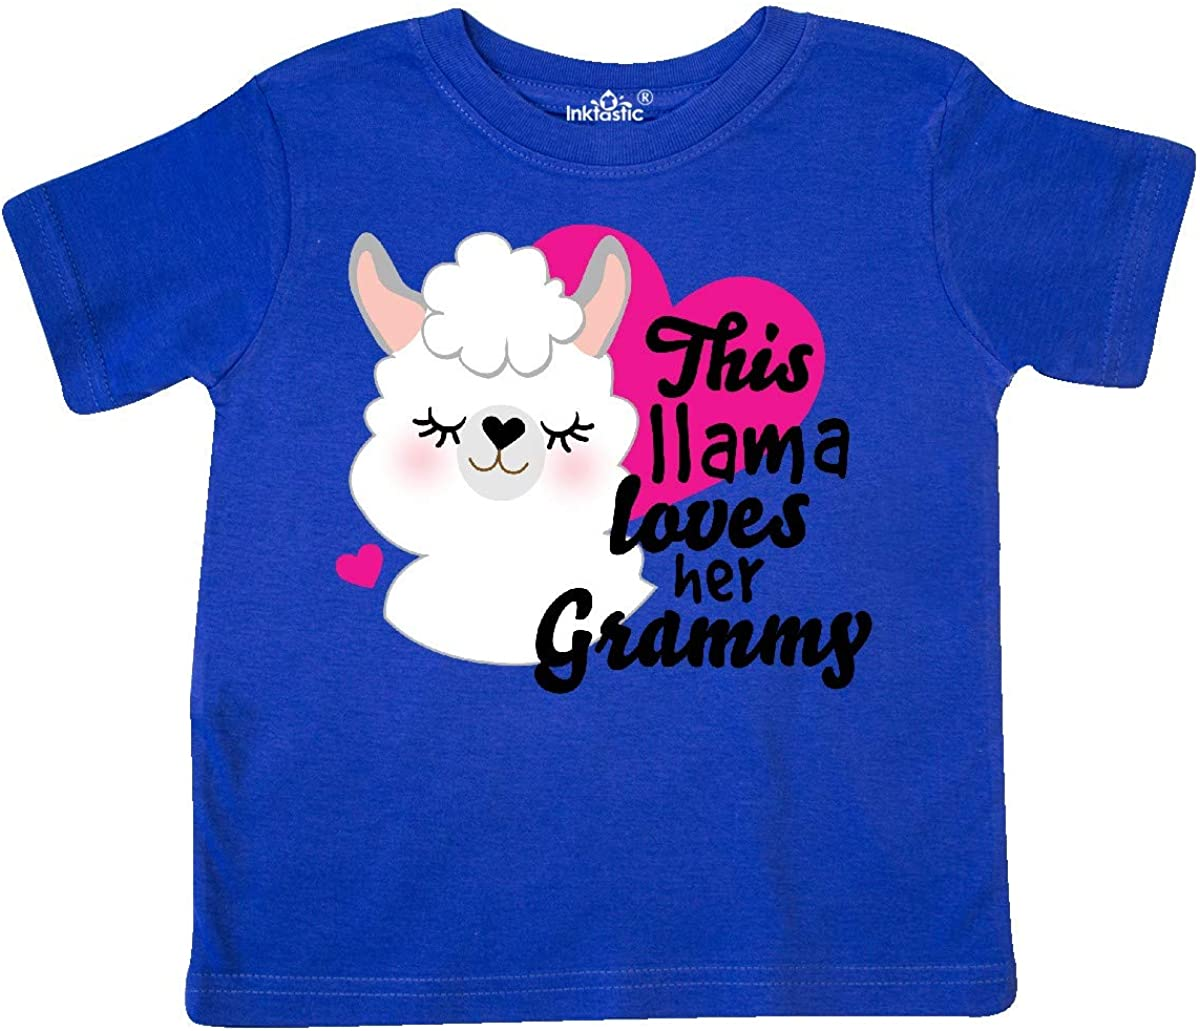 inktastic Valentines Day This Llama Loves Her Grammy Toddler T-Shirt